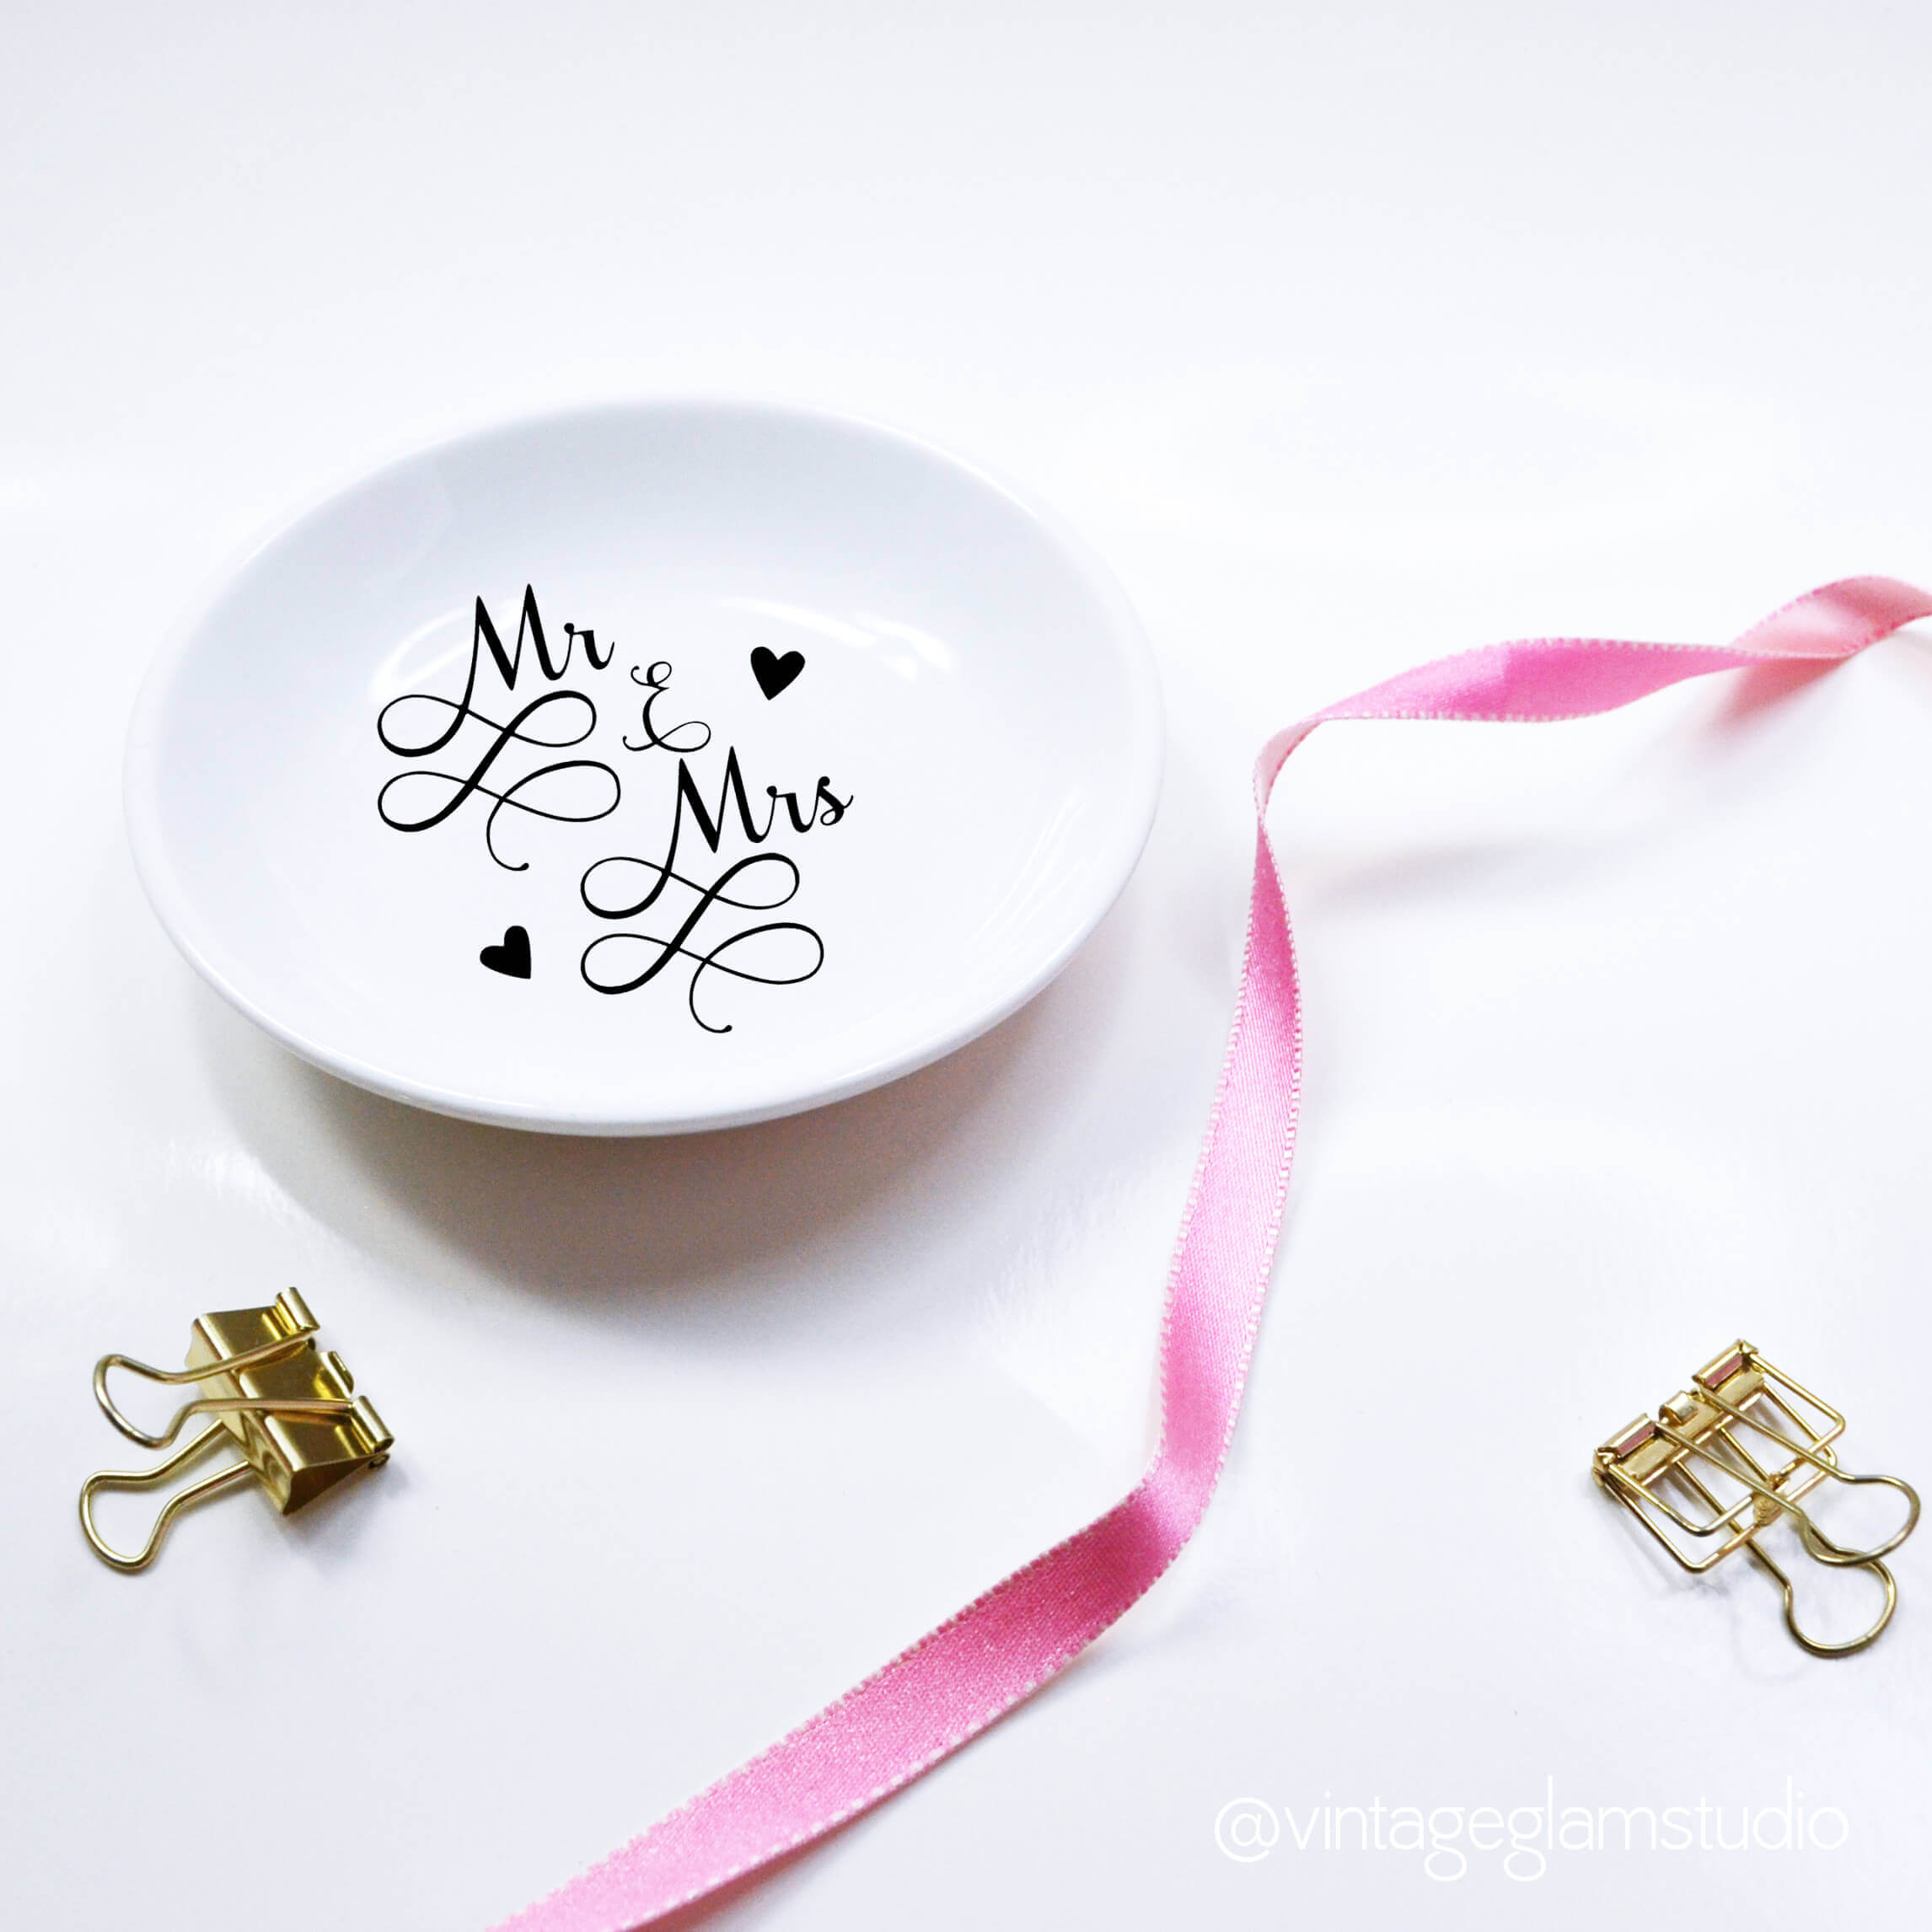 trinket dish - Mr & mrs cut file